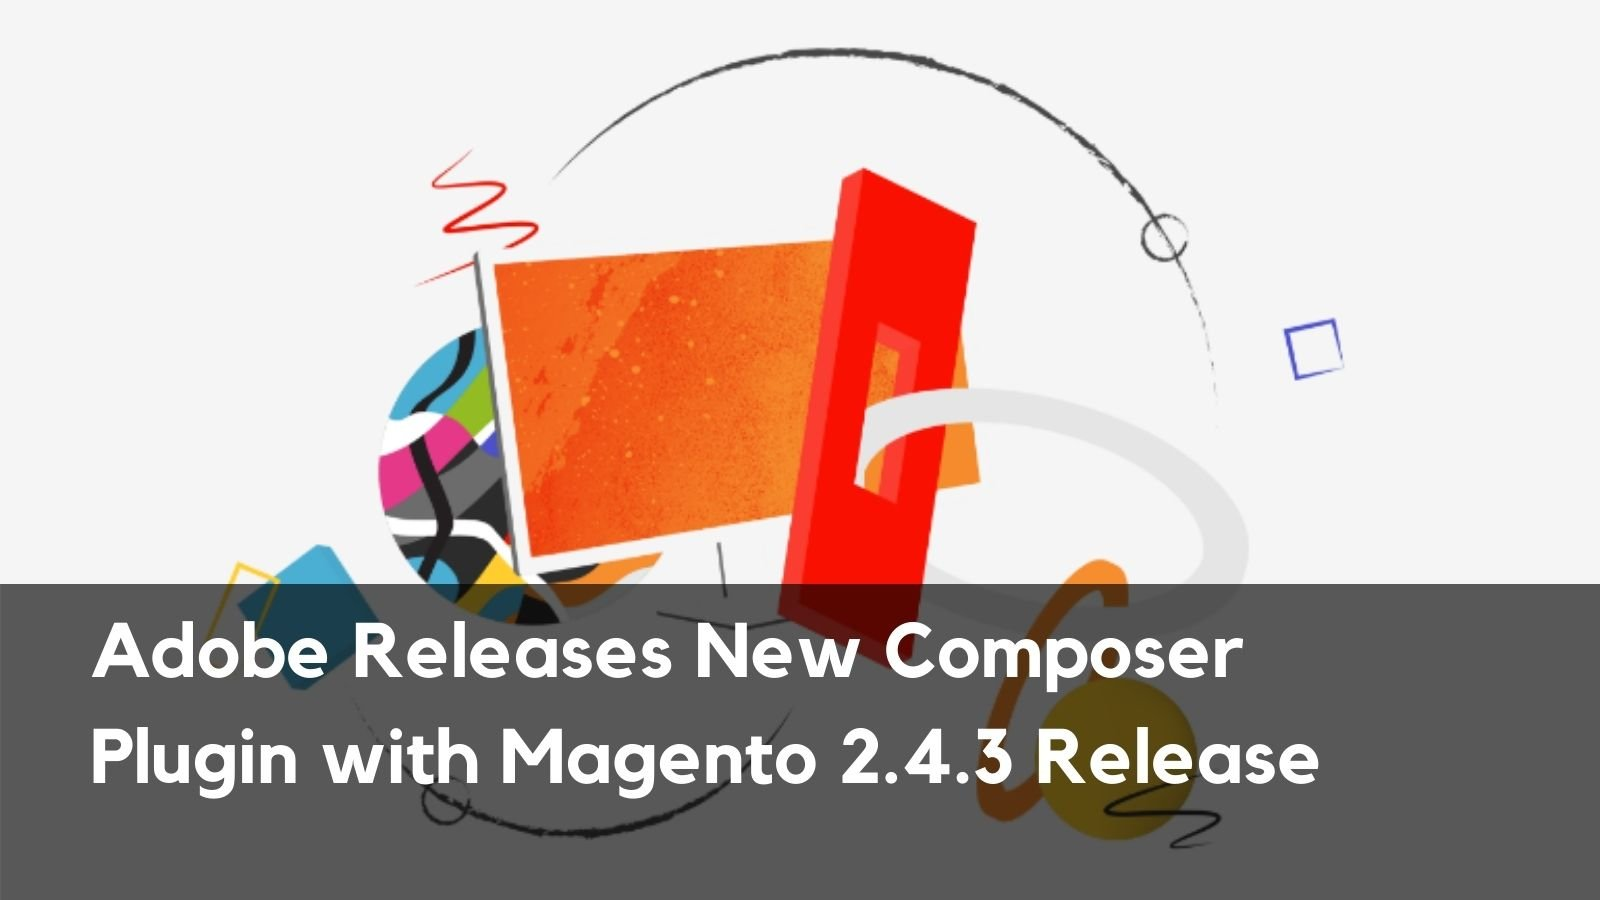 Adobe Releases New Composer Plugin with Magento 2.4.3 Release